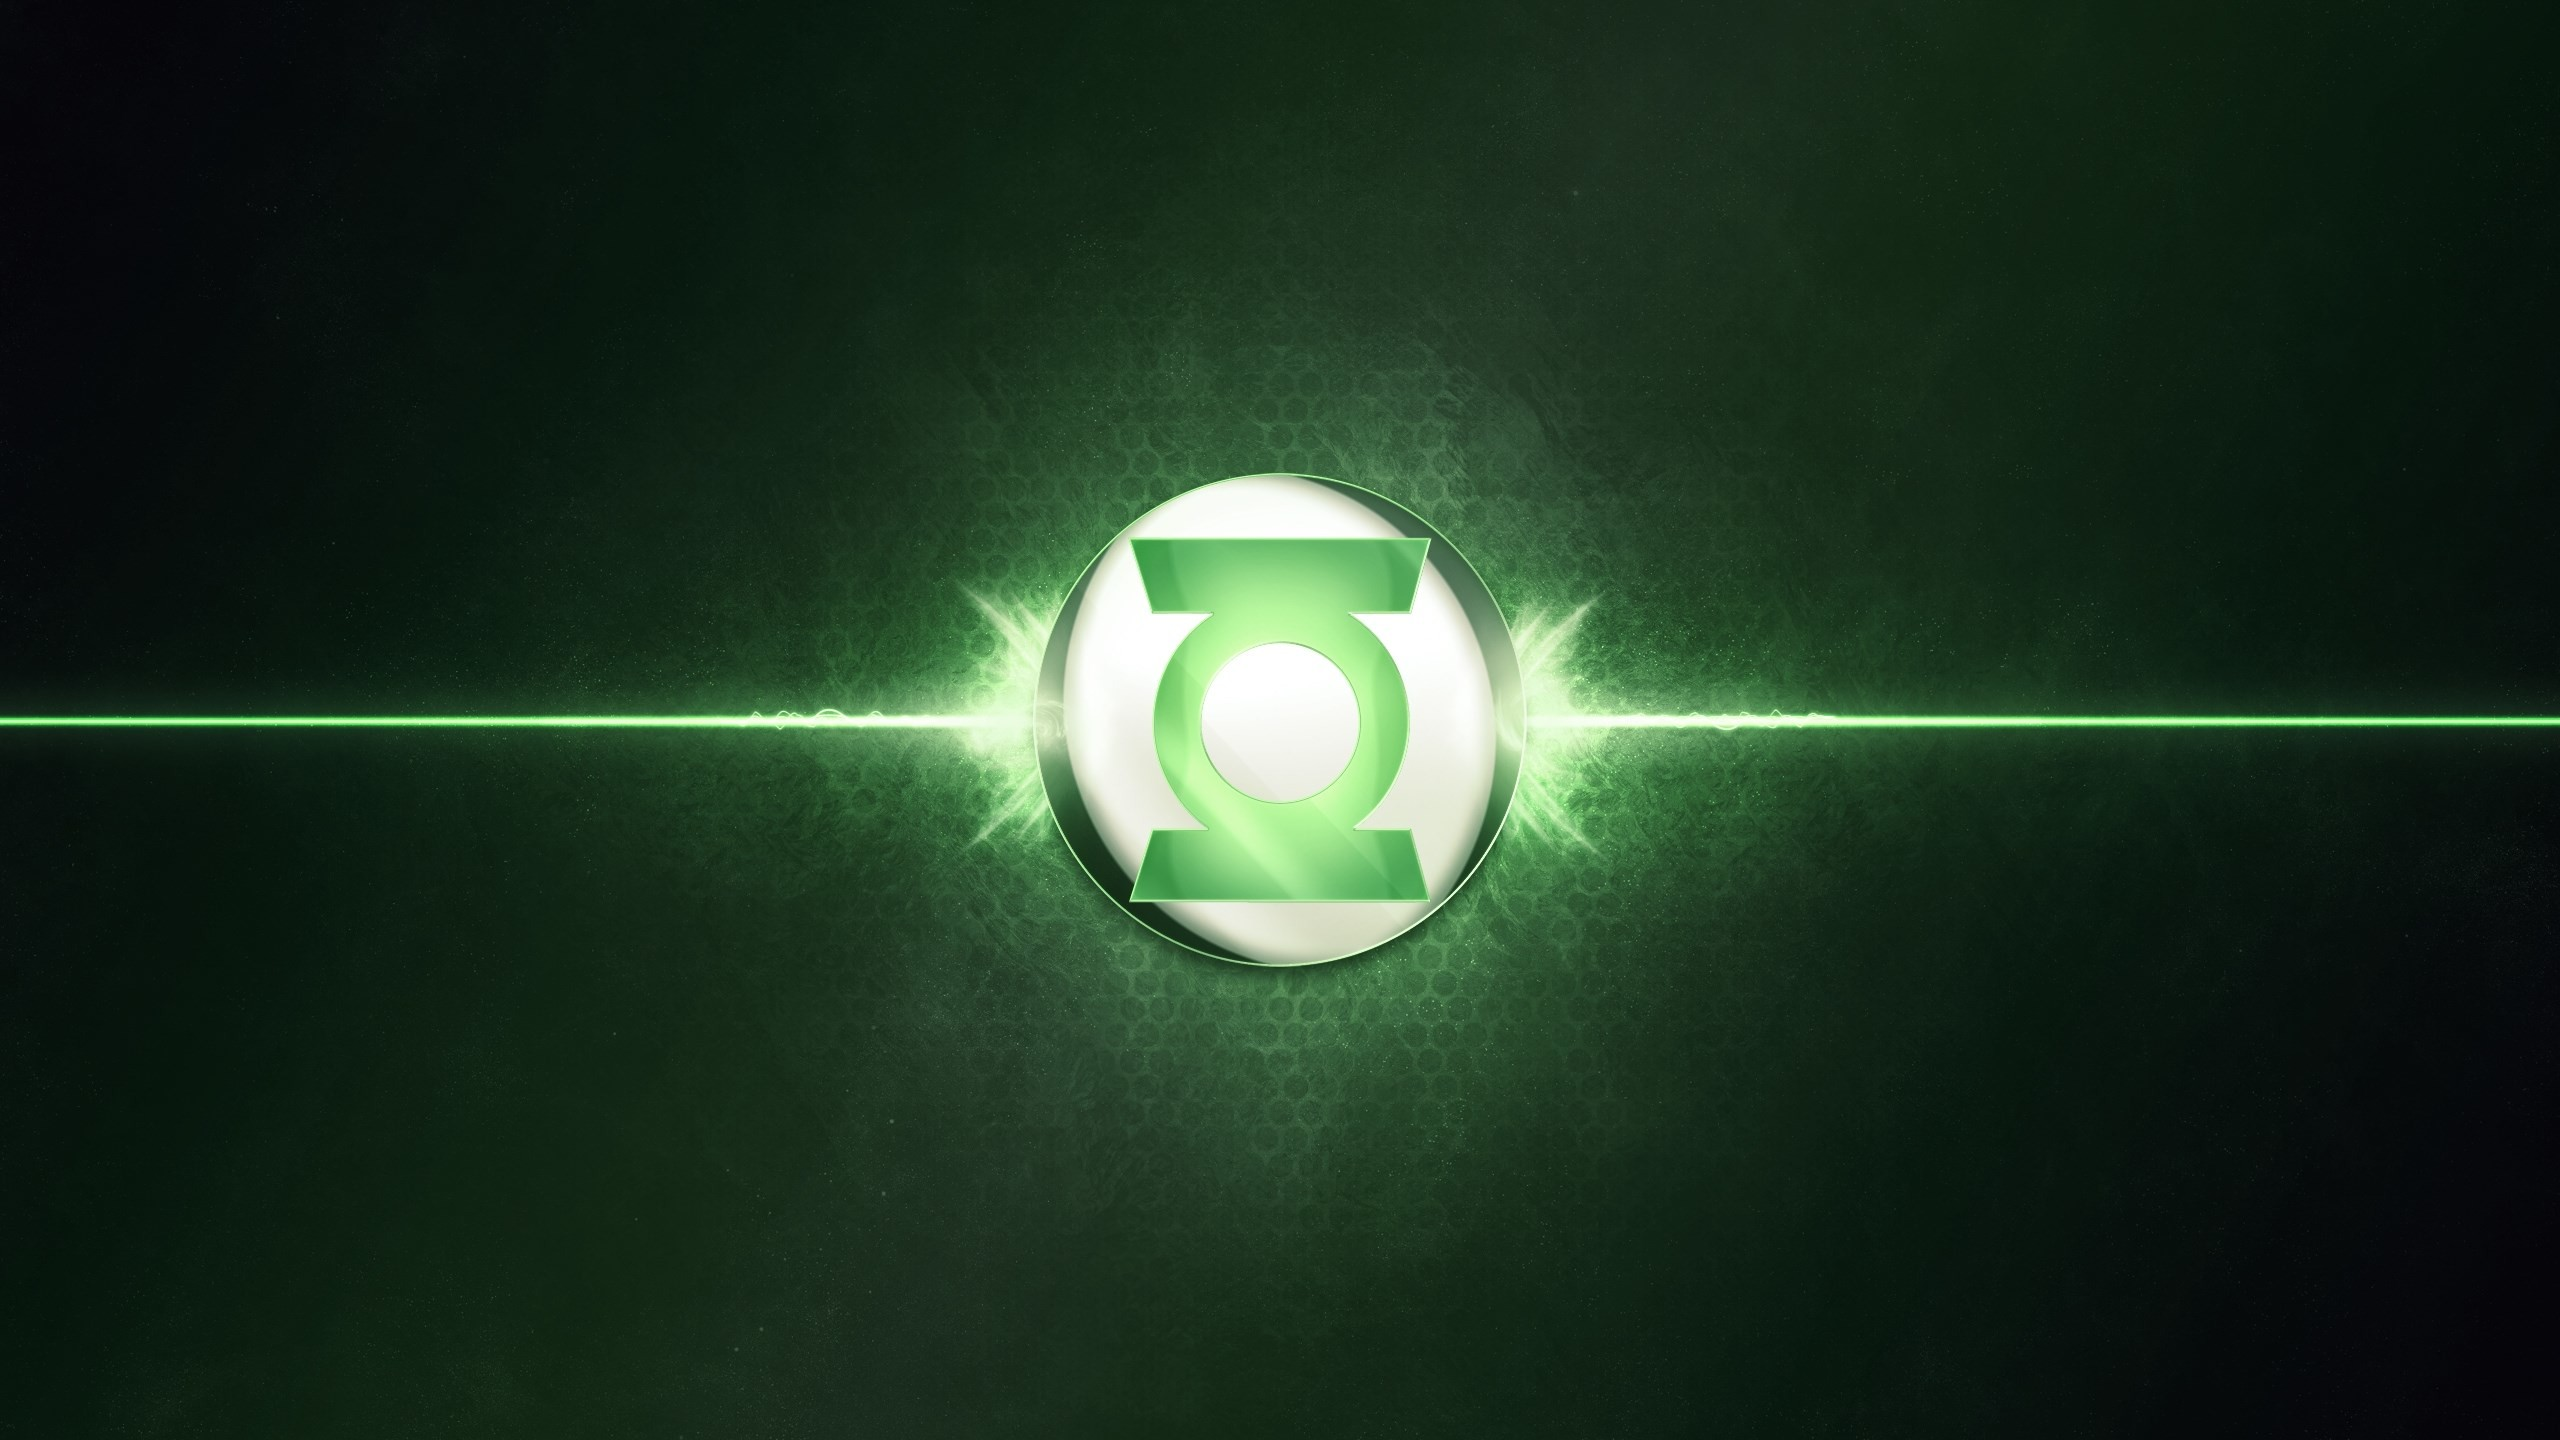 2560x1440px green lantern theme background images by Kemp Peacock